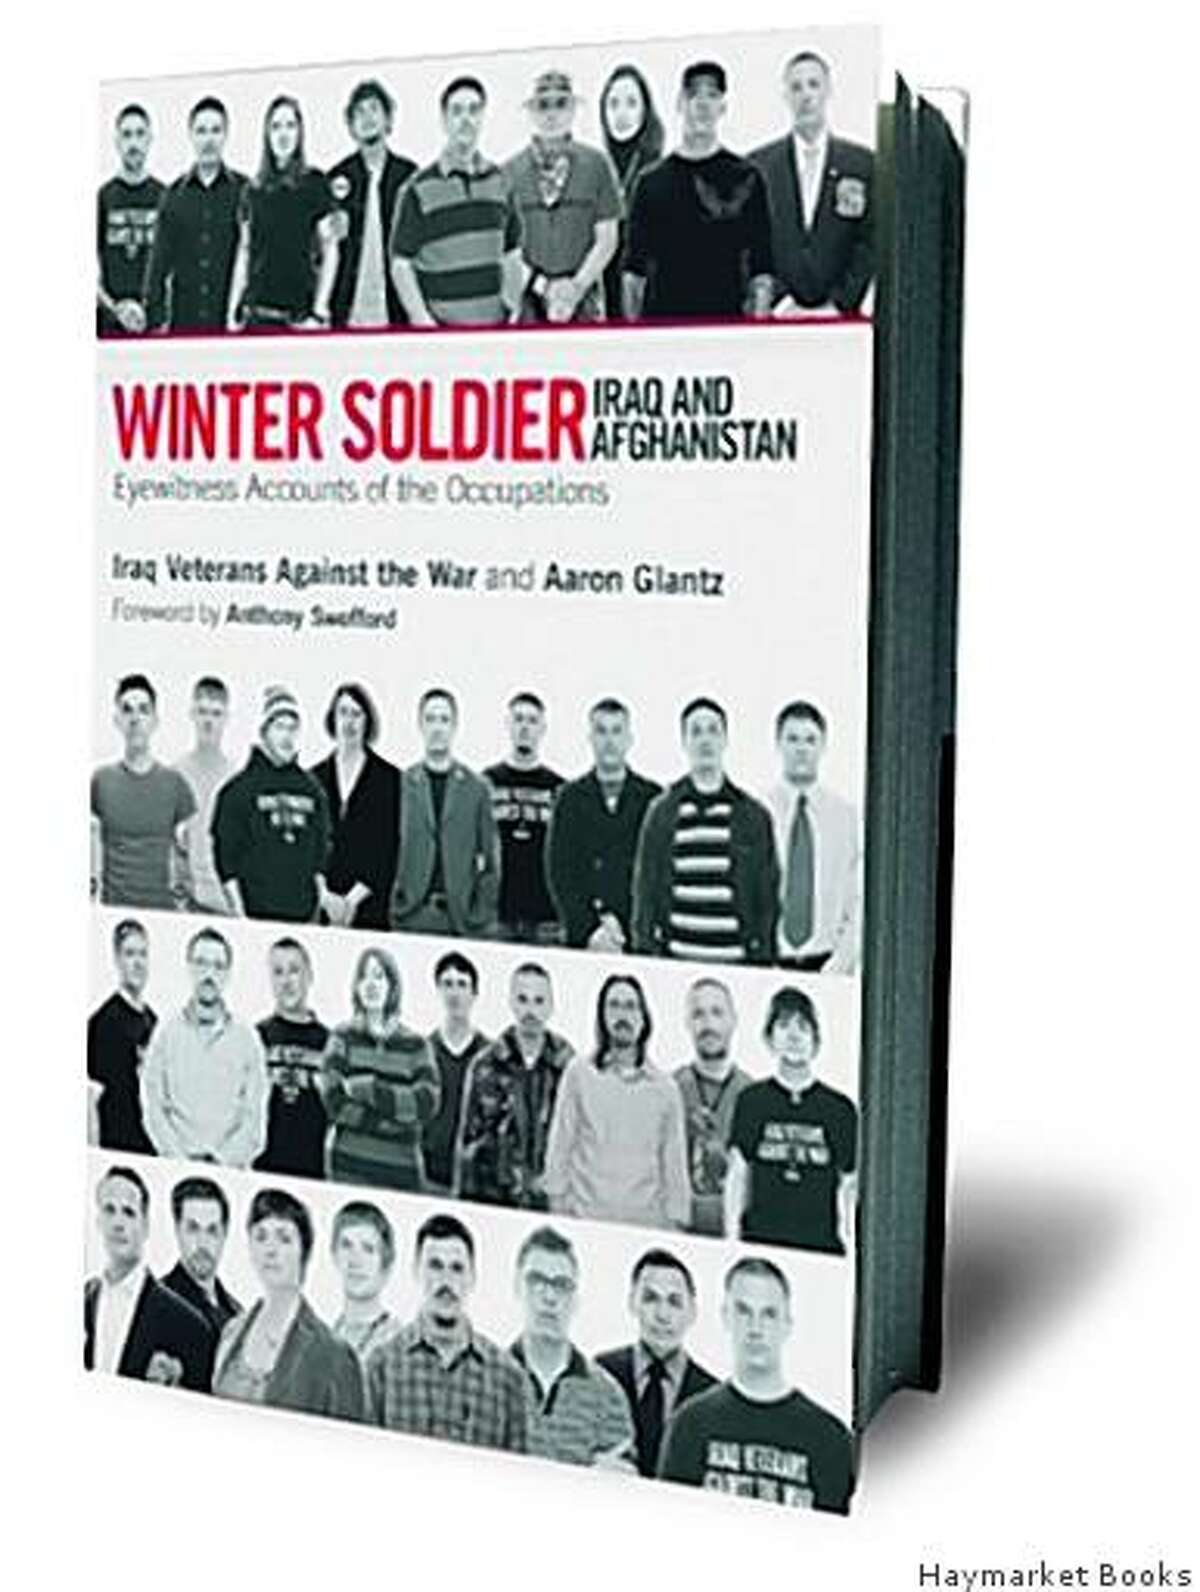 Winter Soldier: Iraq and Afghanistan: Eyewitness Accounts of the Occupations by Iraq Veterans Against the War (Author), Anthony Swofford (Foreword), Aaron Glantz (Editor)